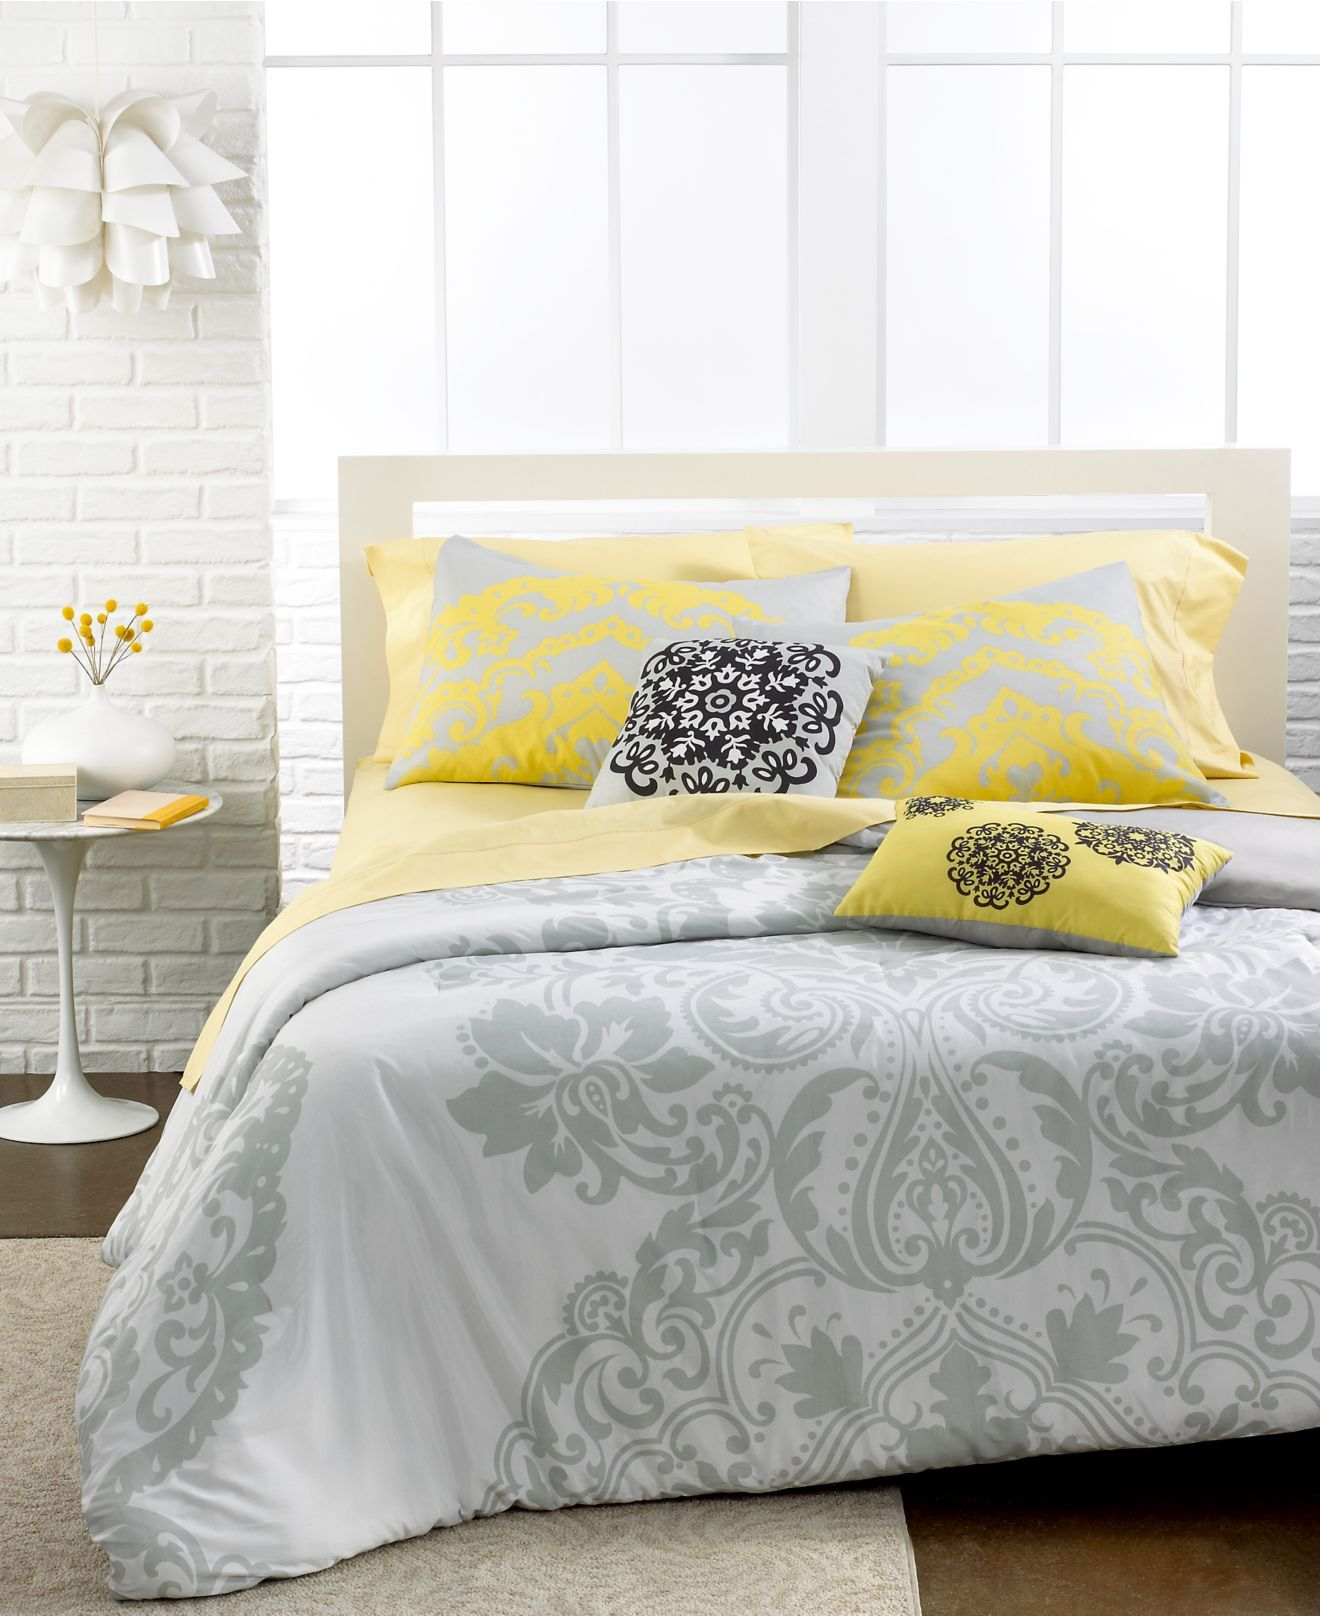 Victoria 5 Piece Comforter And Duvet Cover Sets